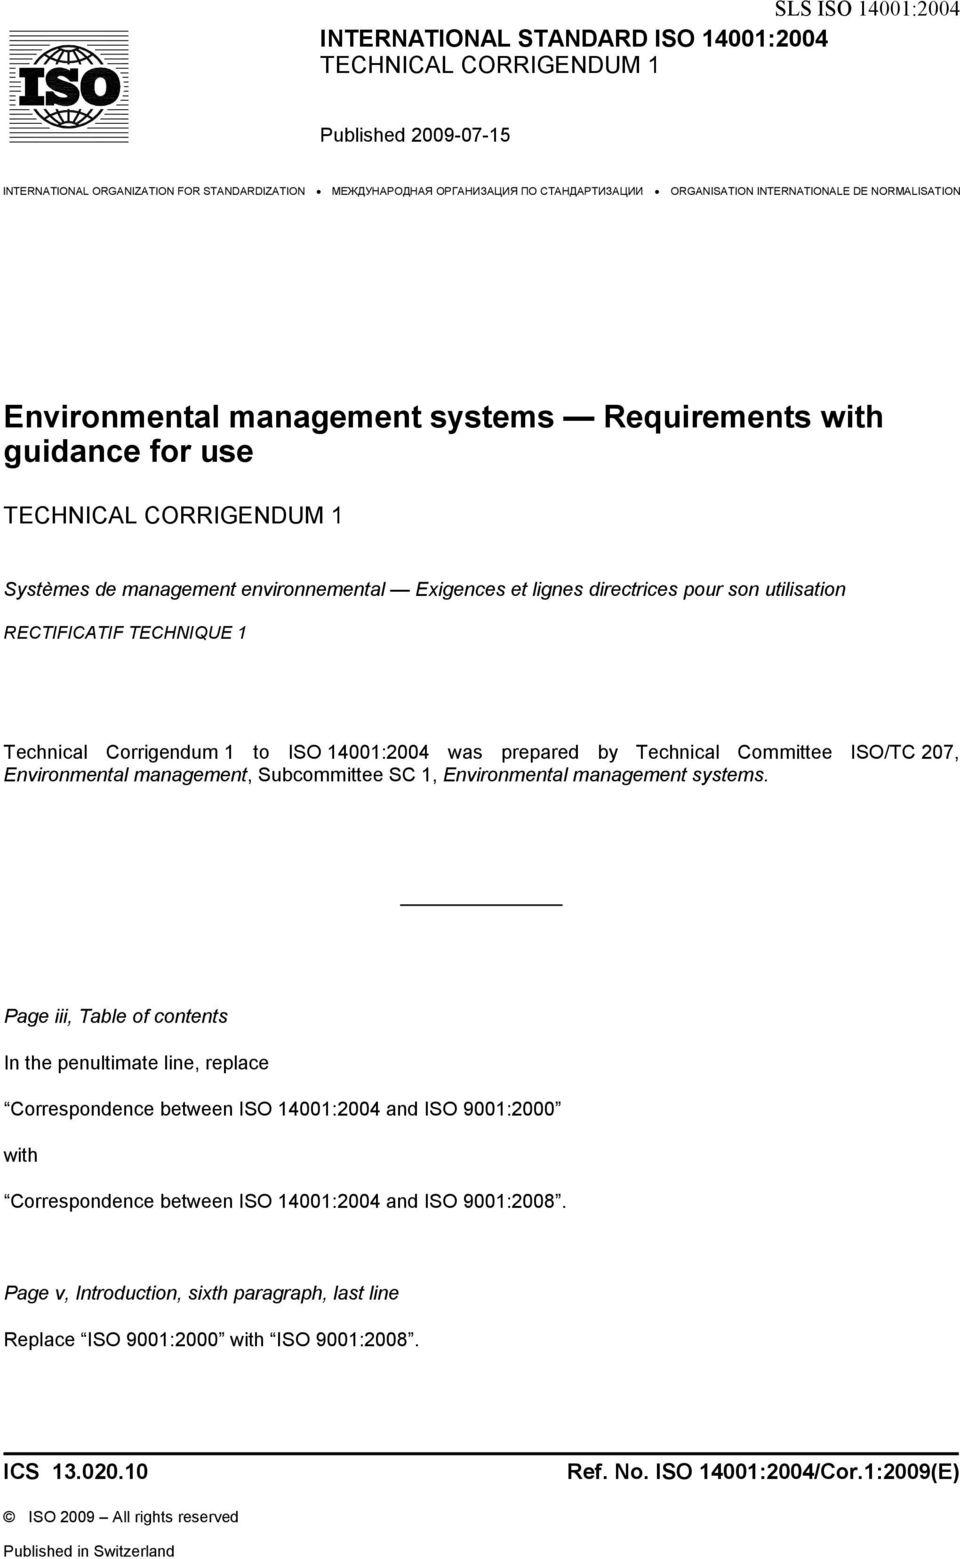 son utilisation RECTIFICATIF TECHNIQUE 1 Technical Corrigendum 1 to ISO 14001:2004 was prepared by Technical Committee ISO/TC 207, Environmental management, Subcommittee SC 1, Environmental